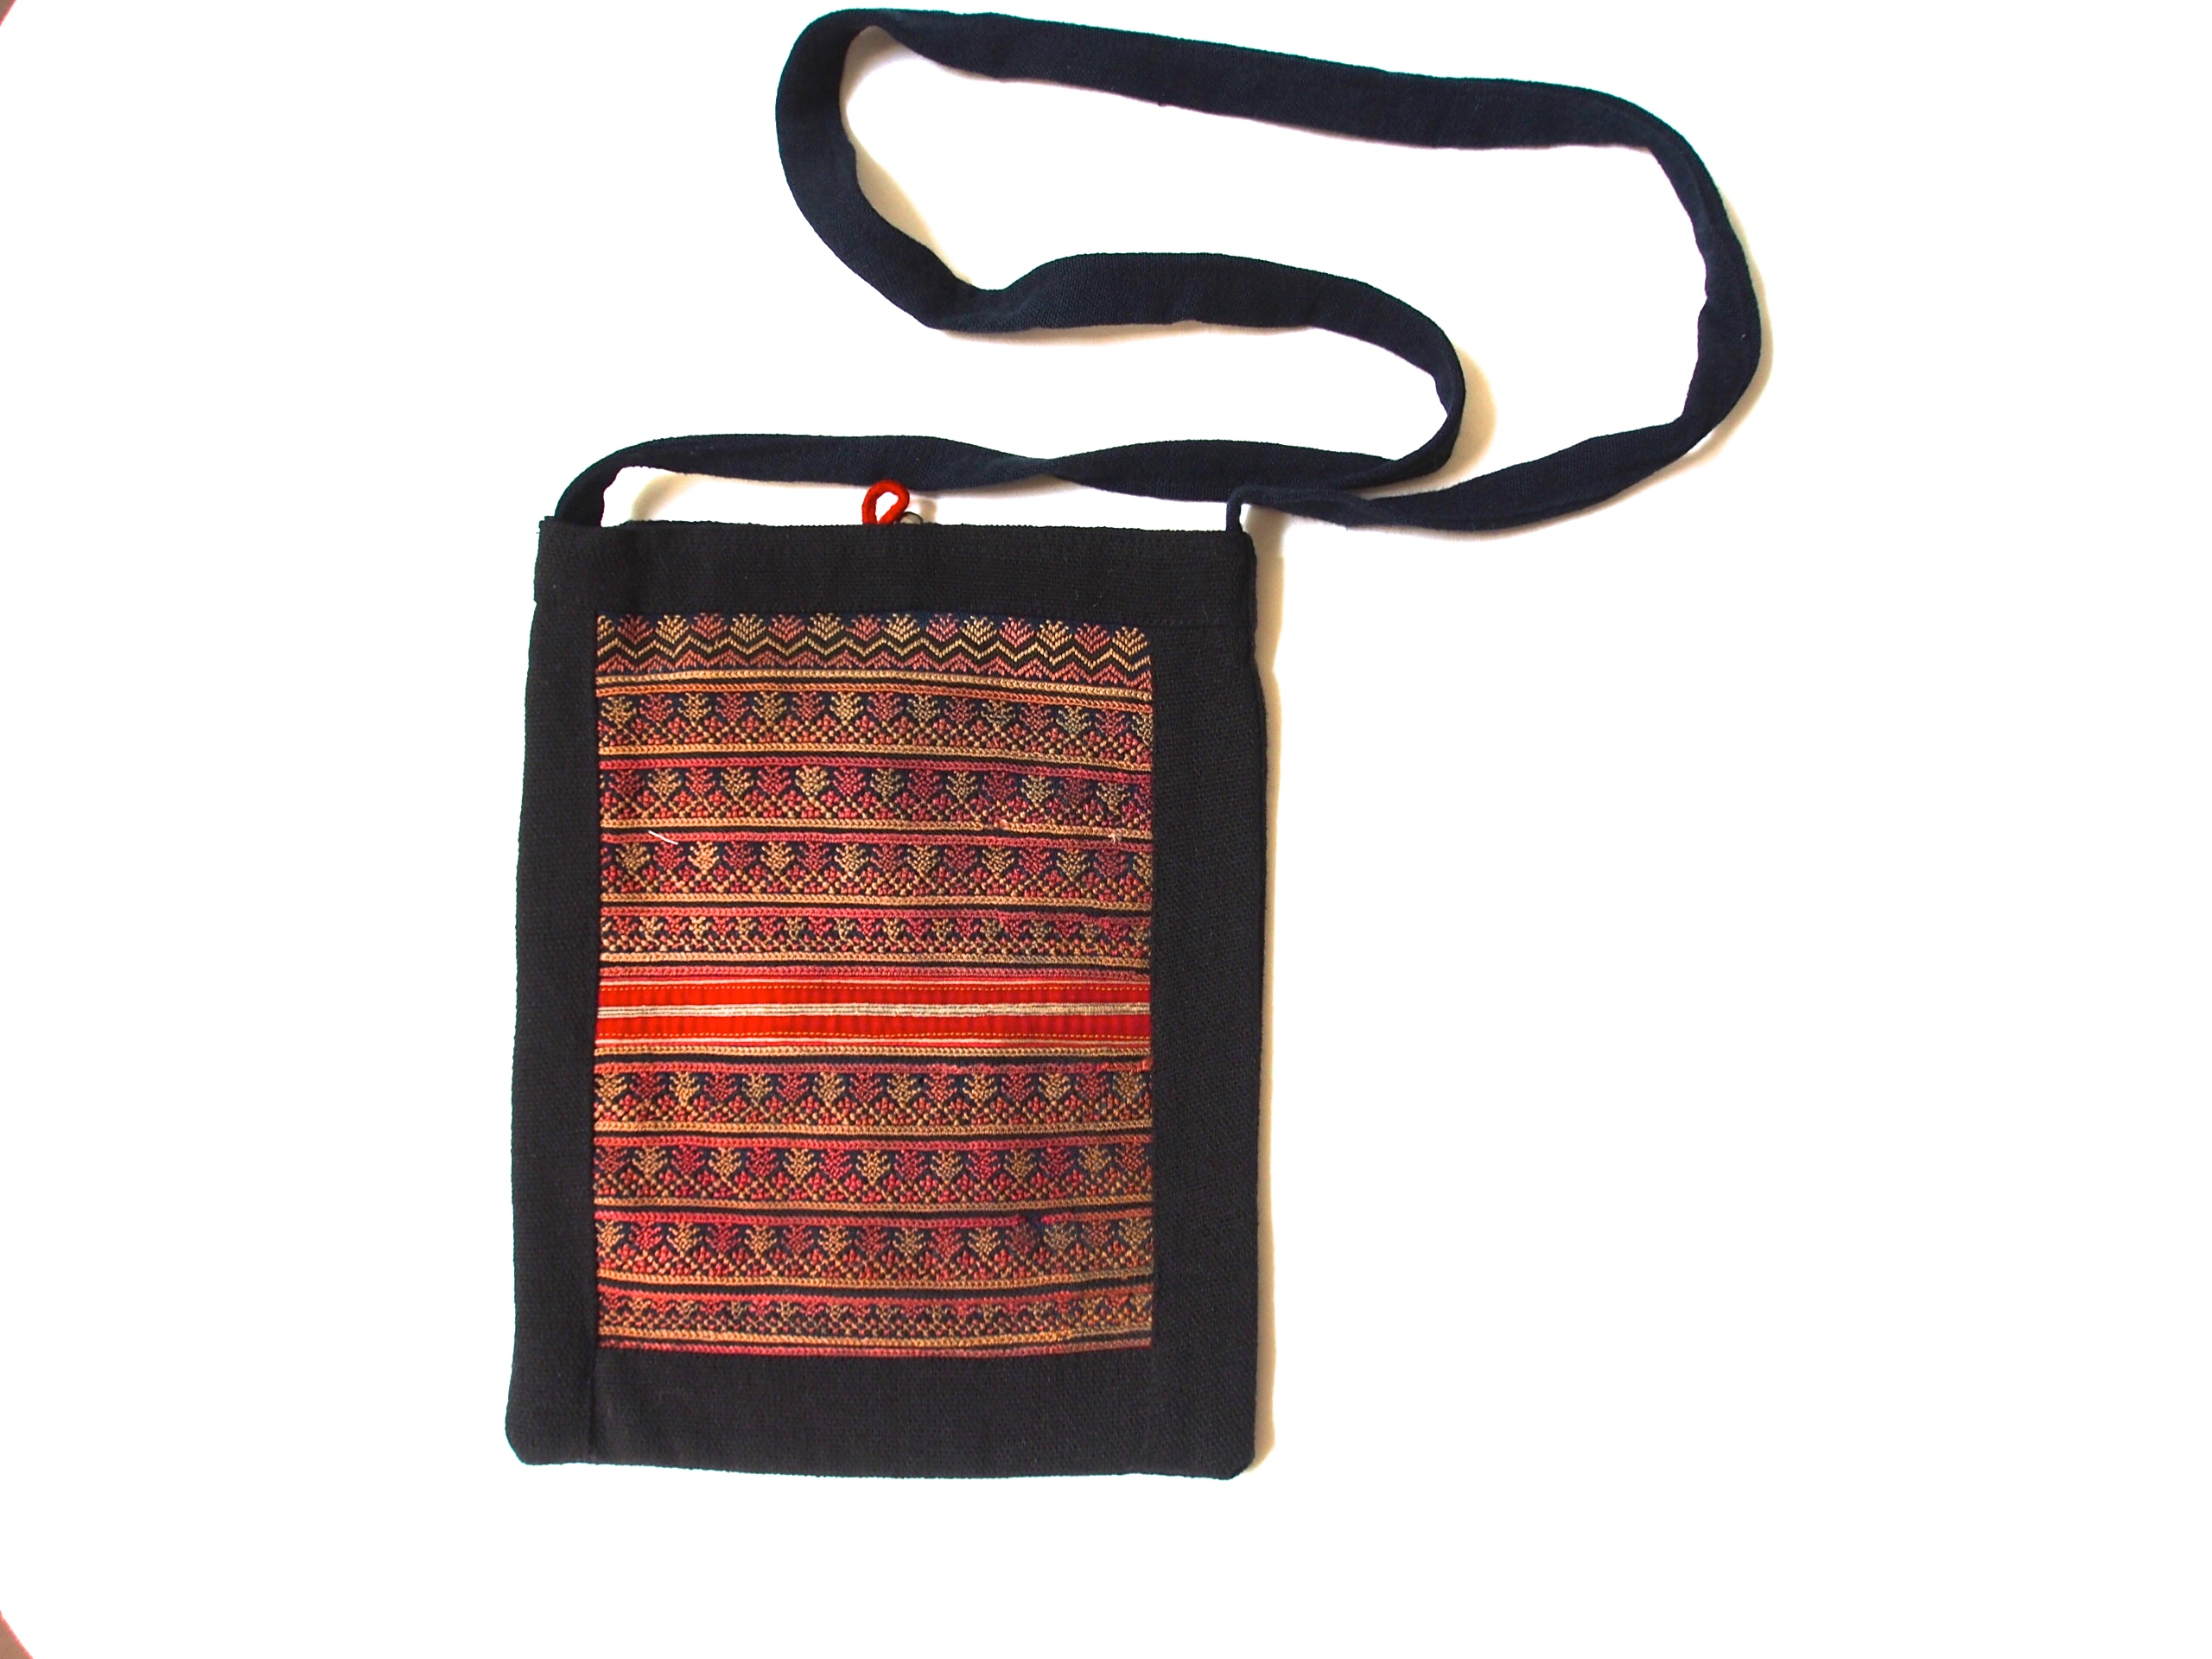 Bag fine h mong embroidery detail the language of cloth